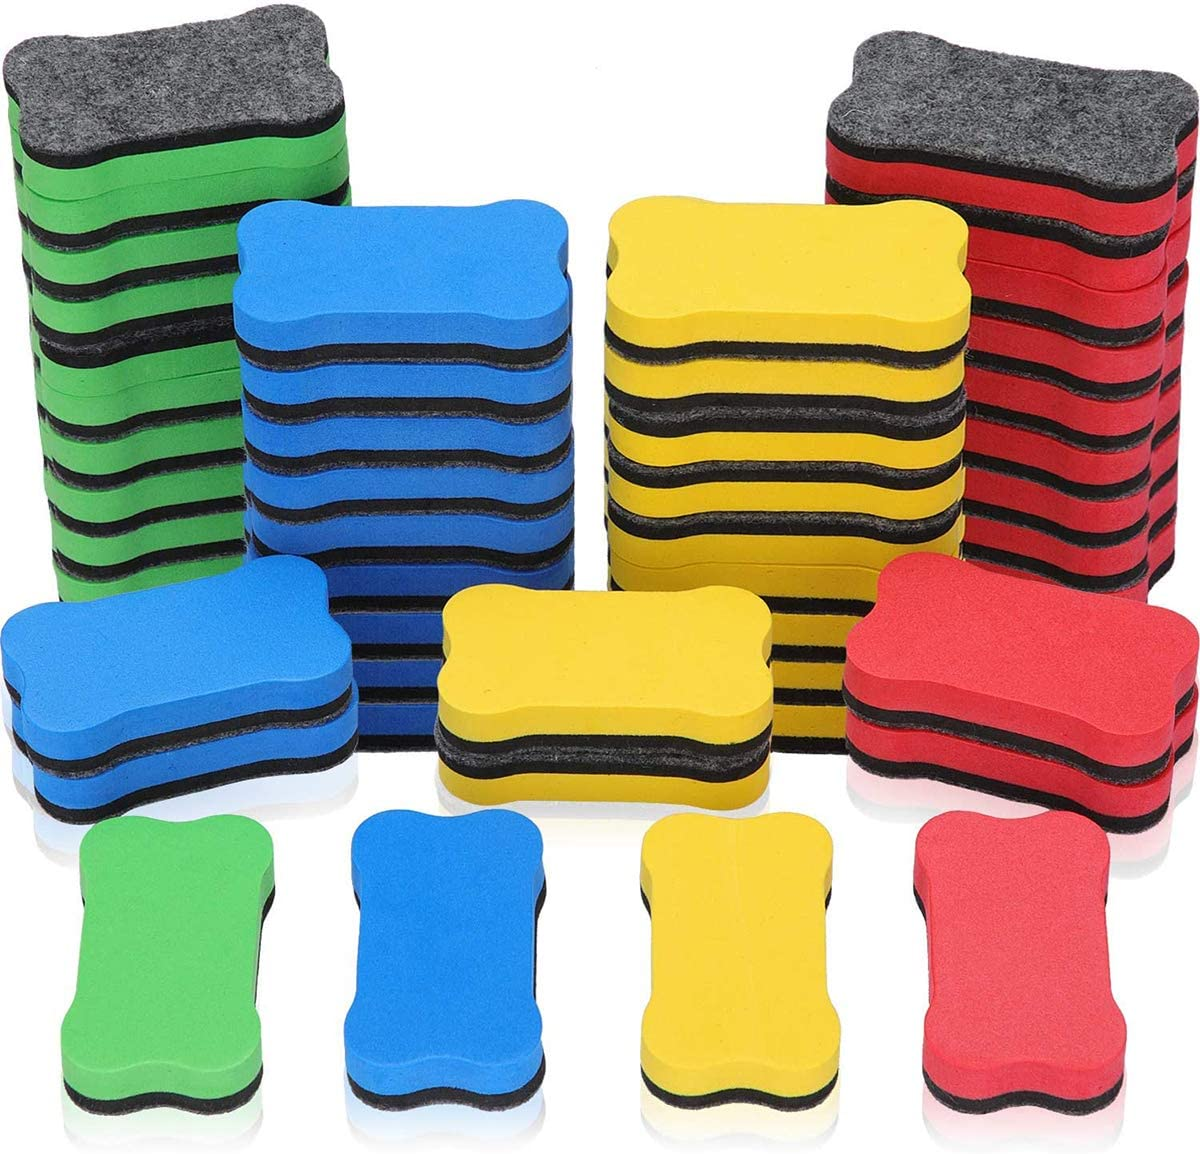 48 Pieces Magnetic Whiteboard Eraser Office Erasers Bone-shaped Dry Erasers Fit for School, Home and Office, Red, Yellow, Blue and Green